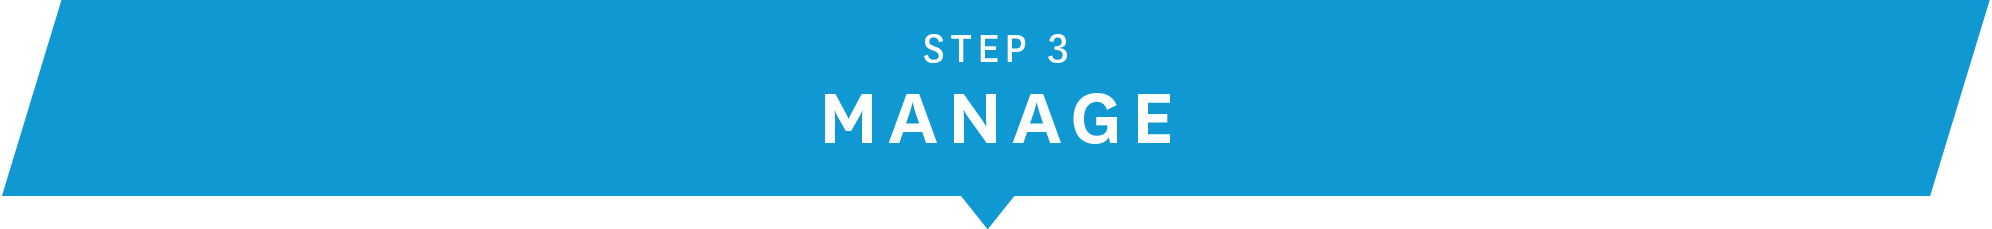 step-3-manage